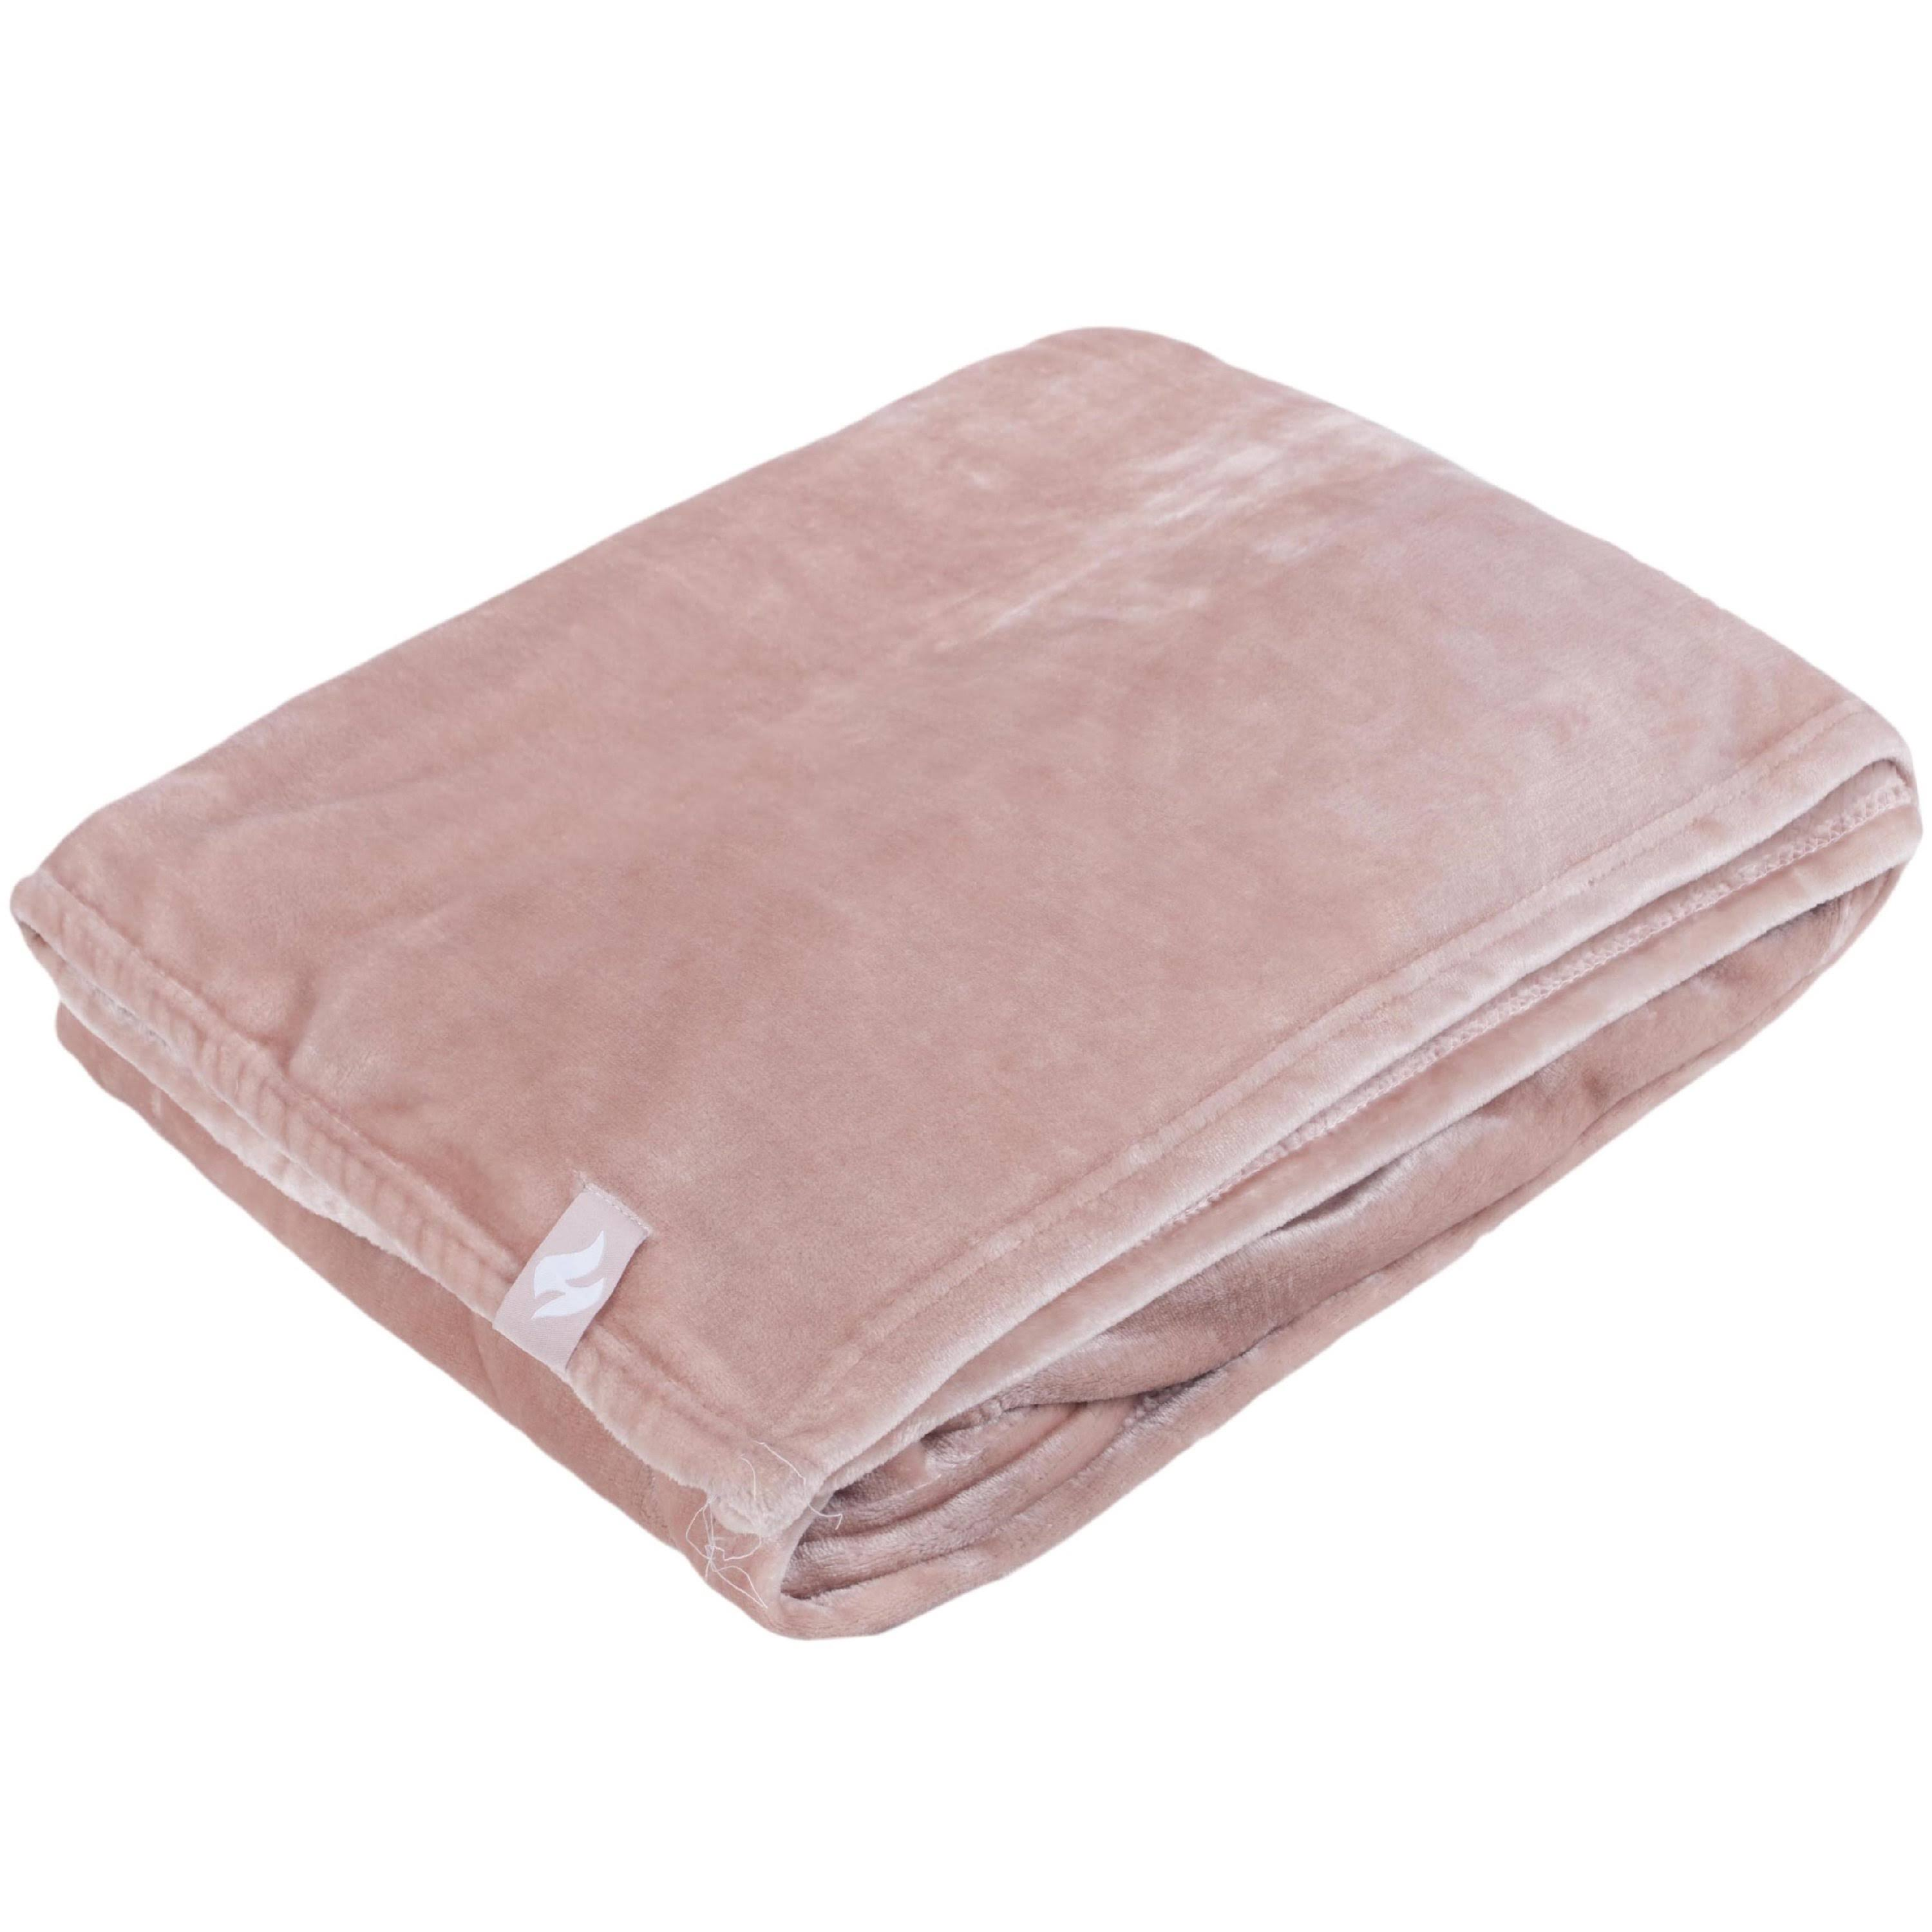 Heat Holders Snuggle Ups Thermal Blanket - Dusty Pink